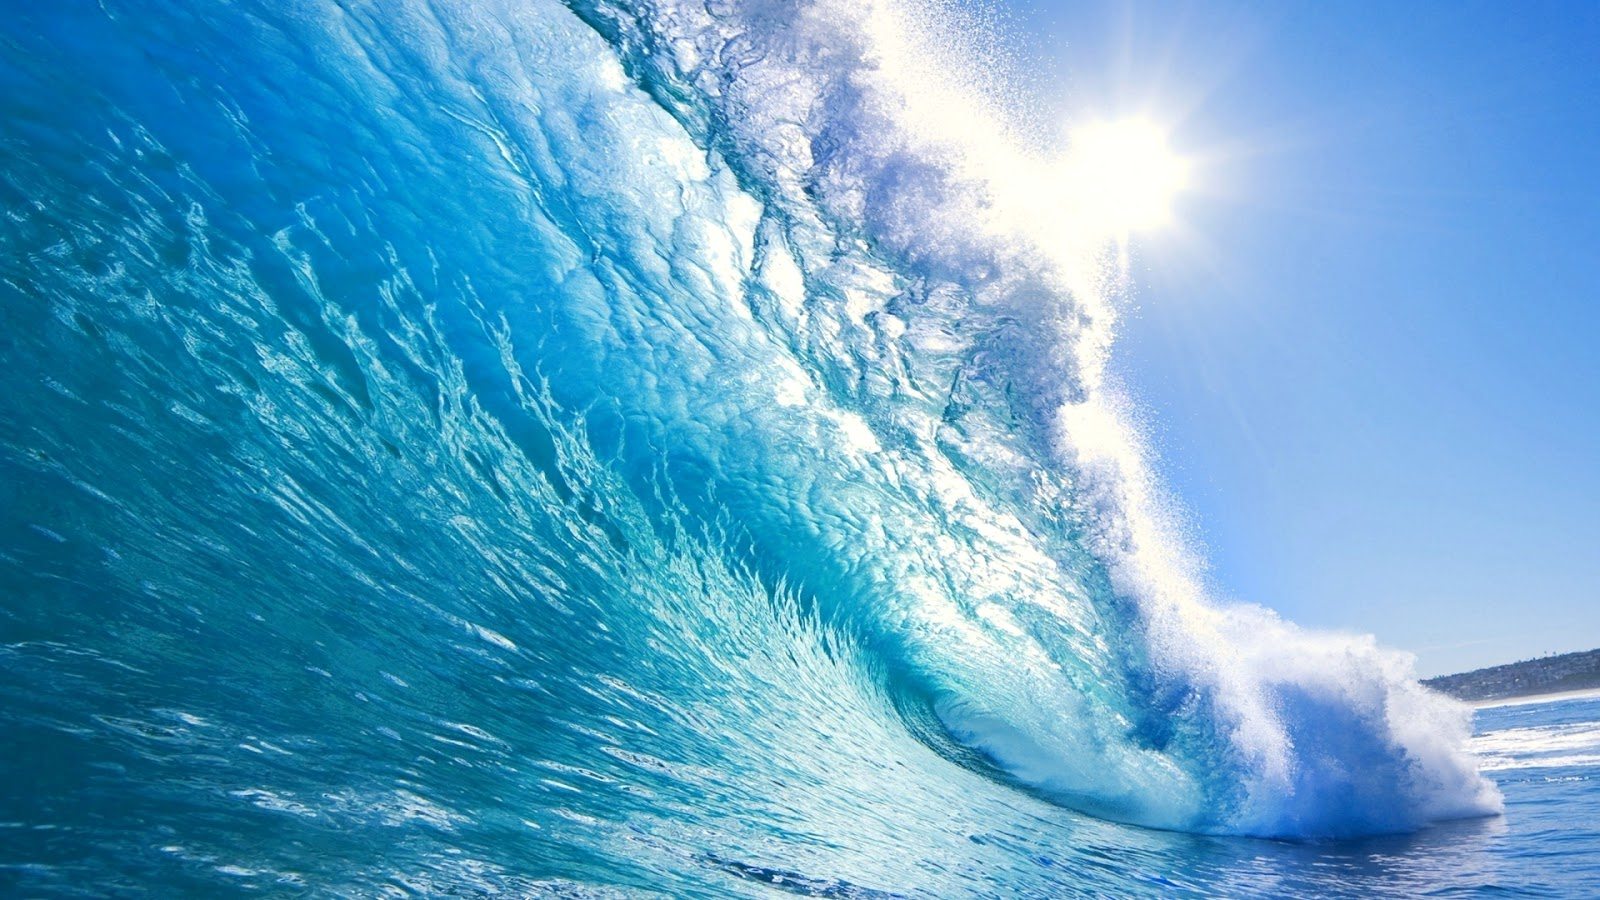 water waves wallpaper | Zone Wallpaper Backgrounds